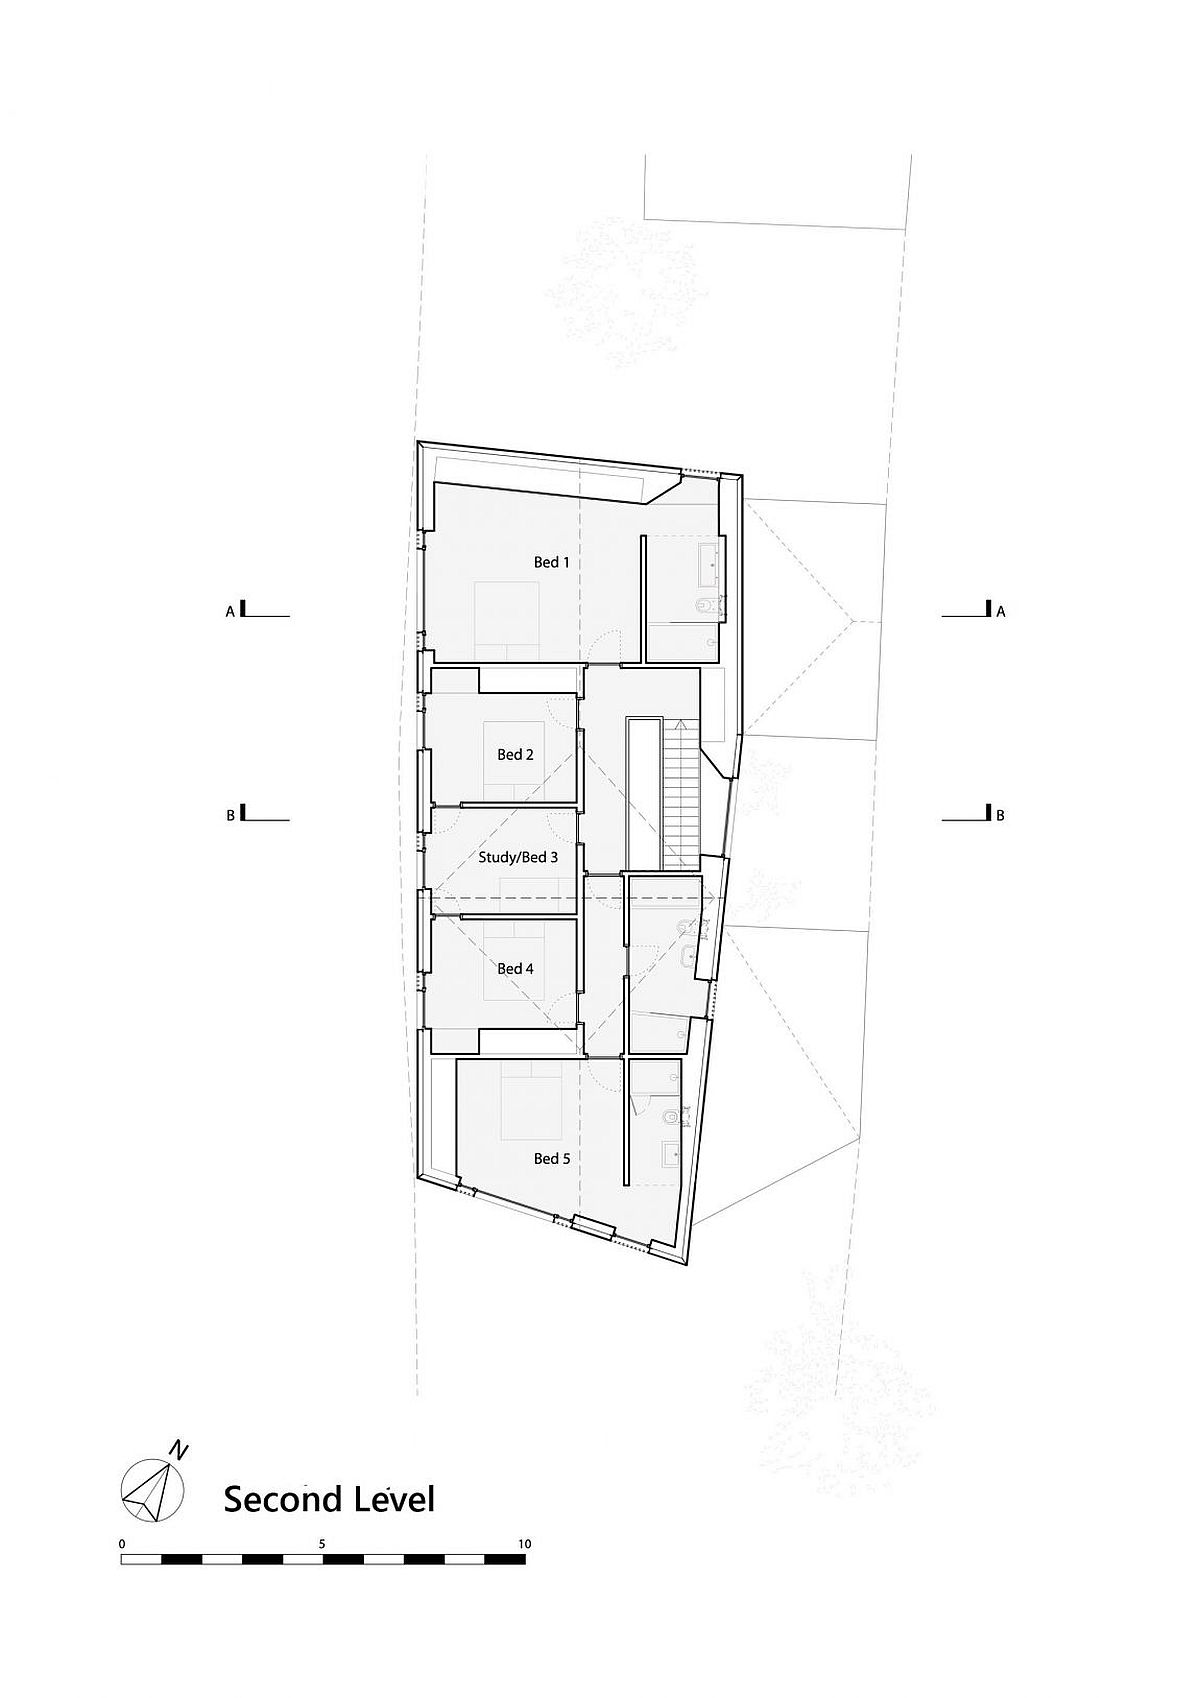 Second level floor plan of riverside English home with five bedrooms